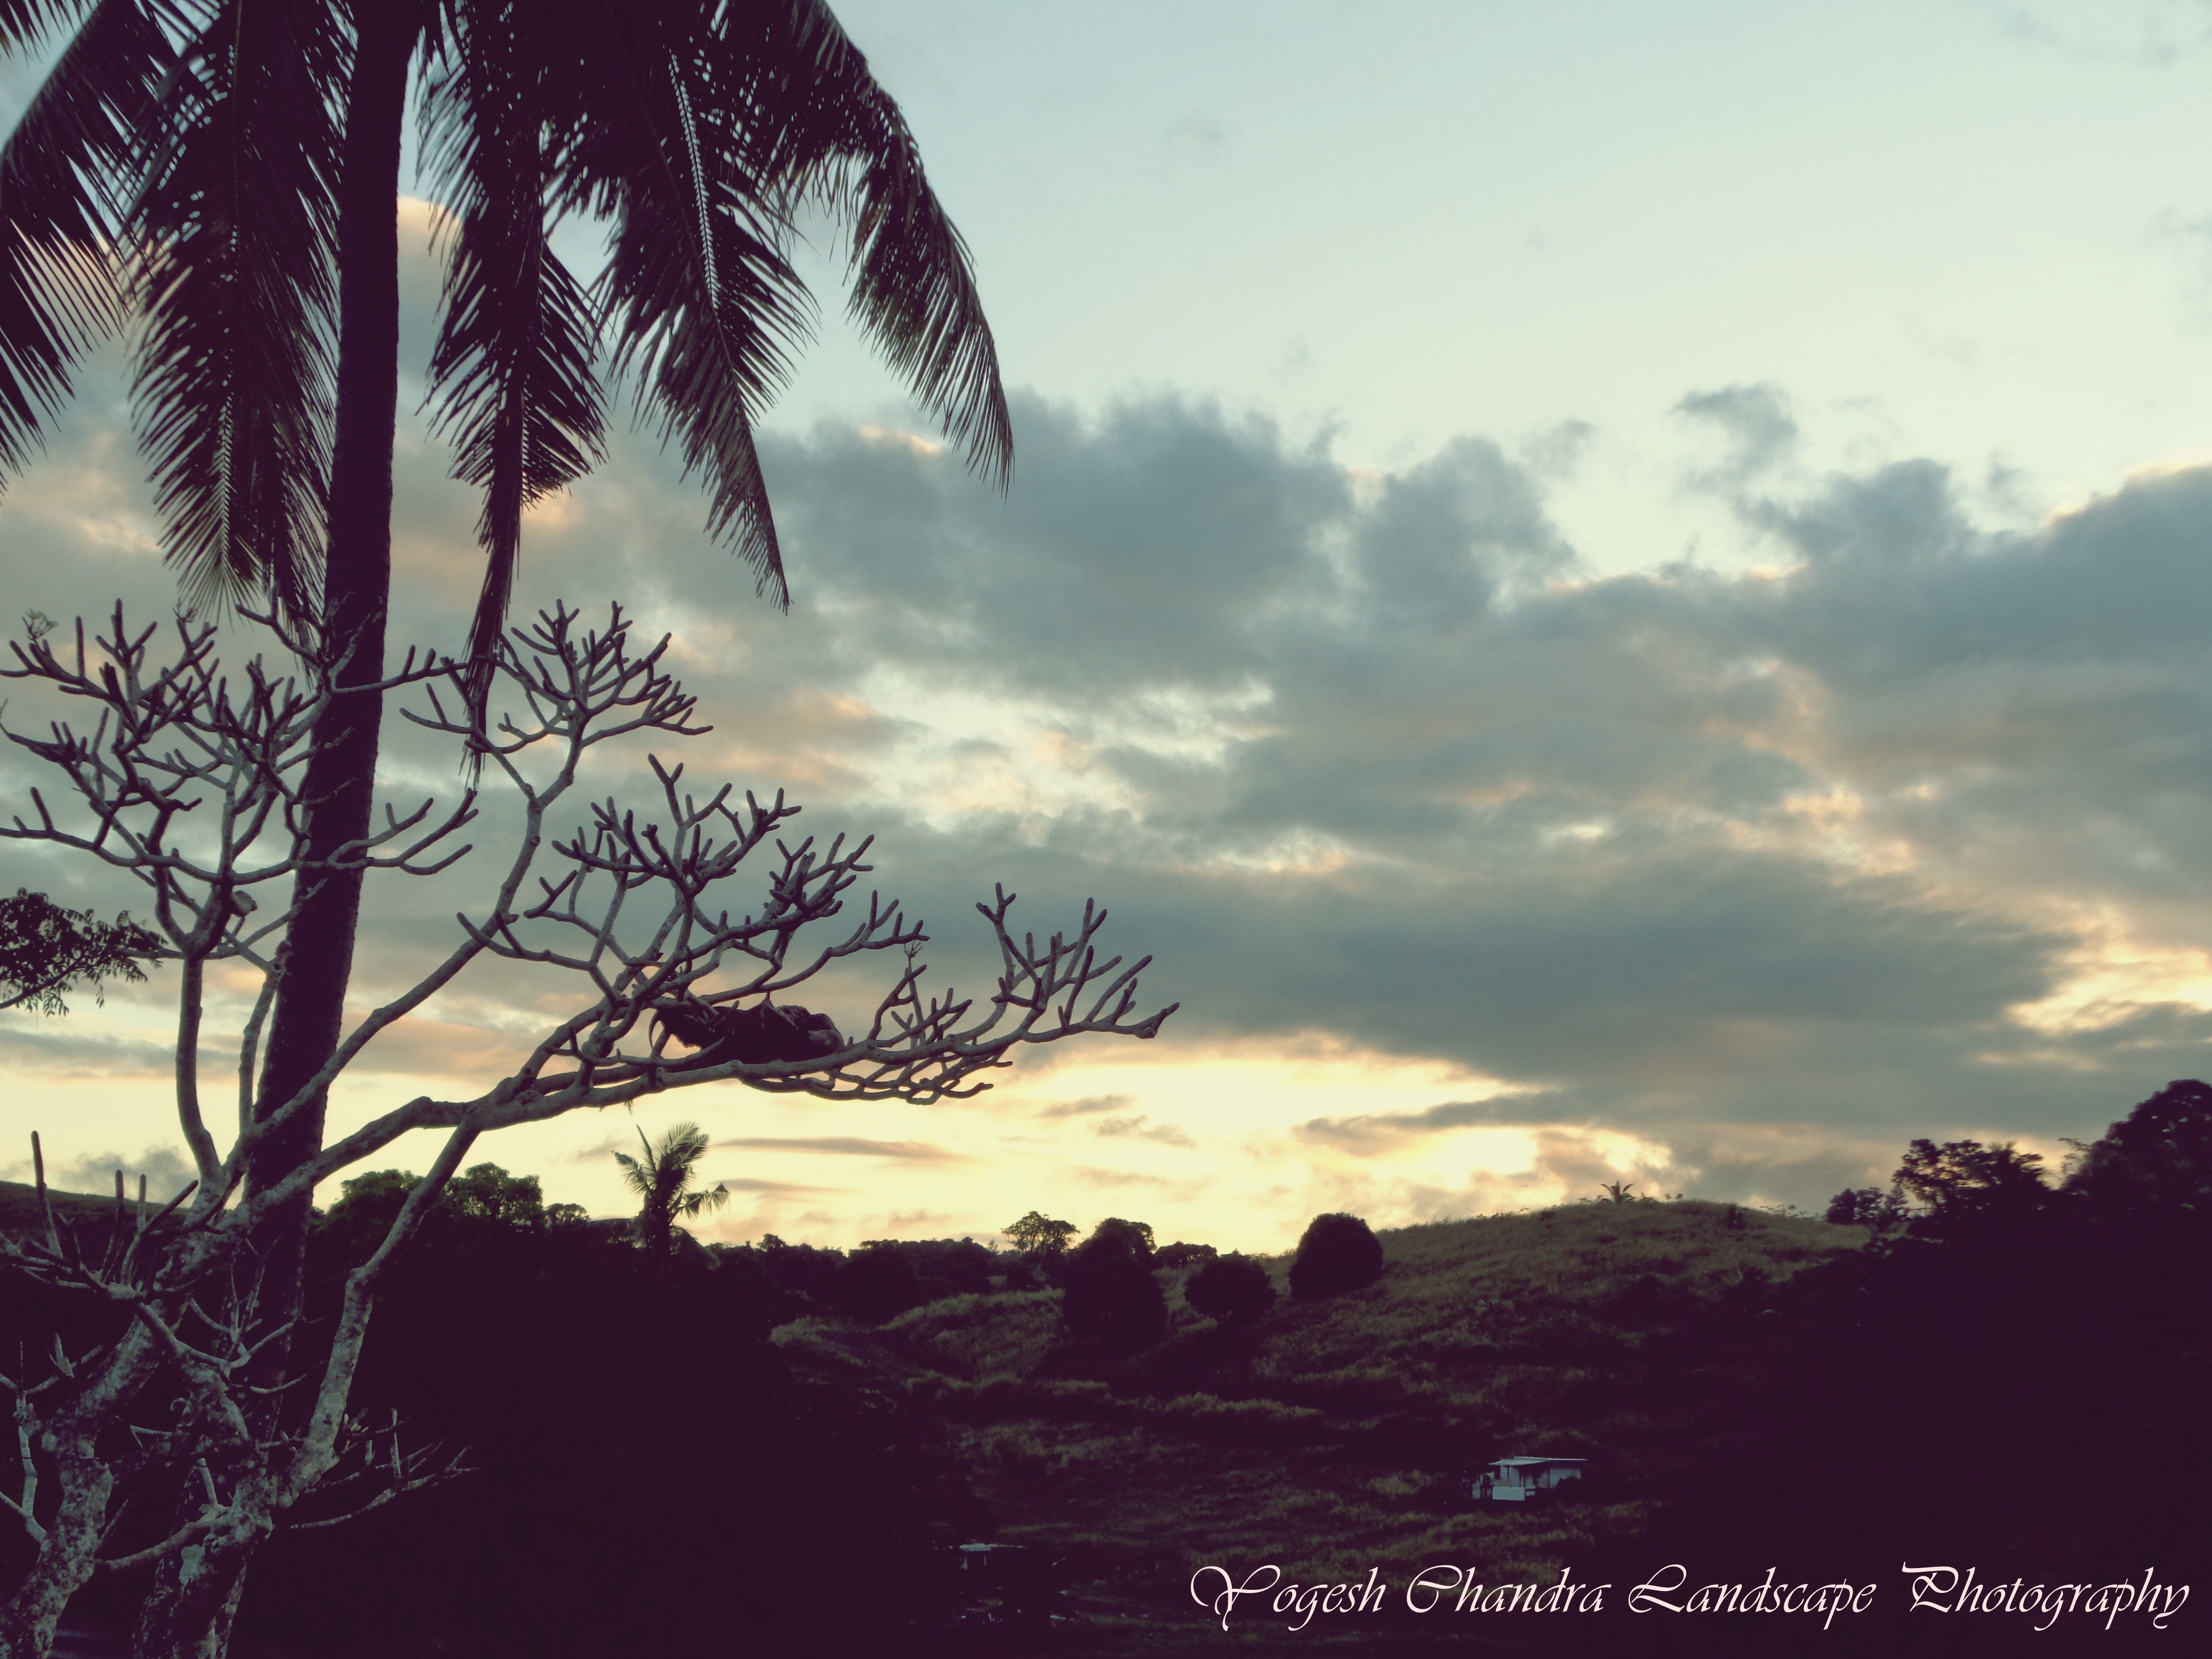 New Piece Landscapephotography Passion Nature Fiji Landscape Photography Fiction Writing Walking In Nature